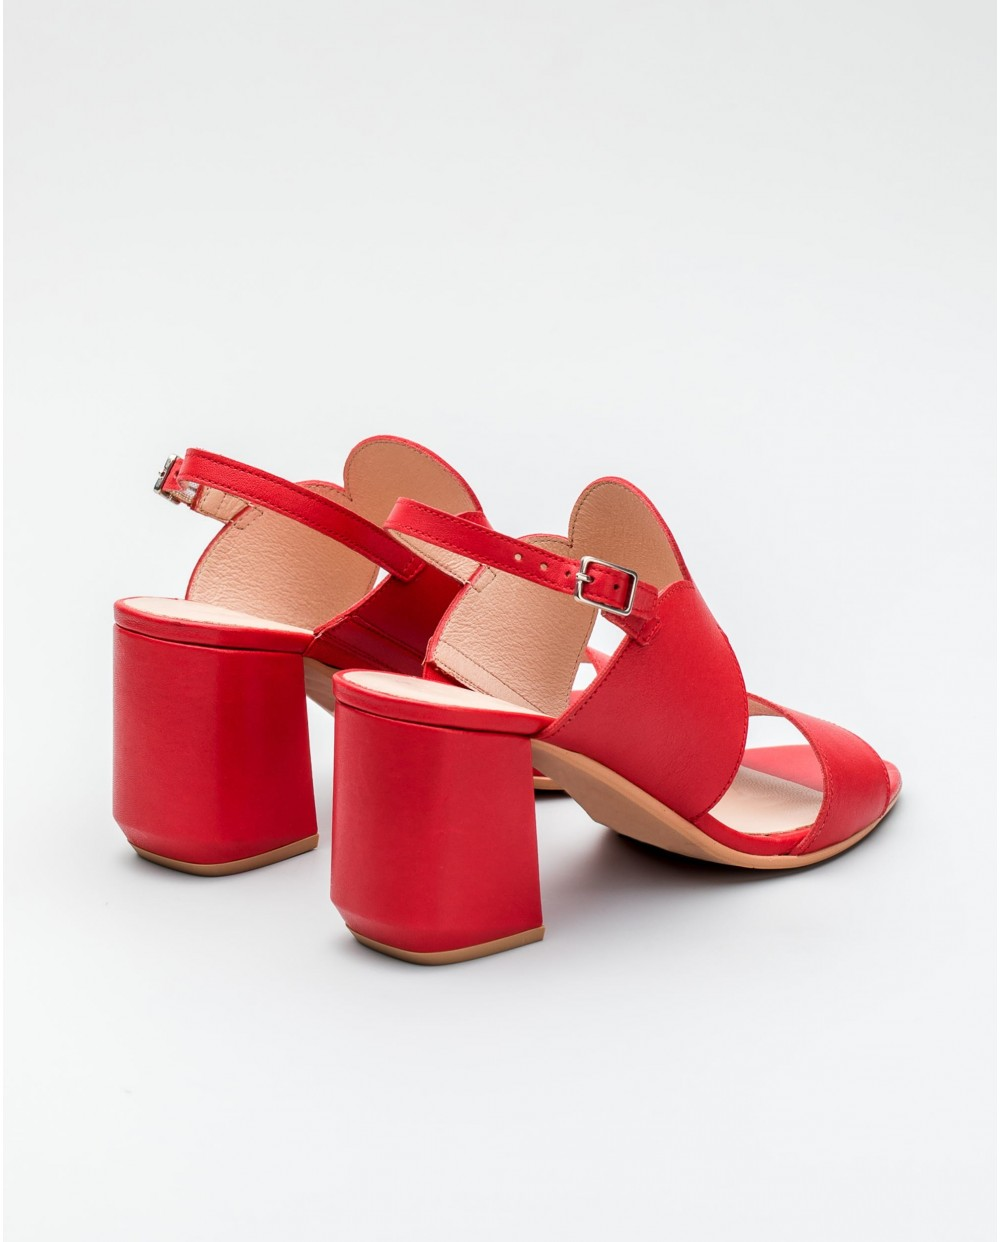 Wonders-Heels-Sandal with leather heel